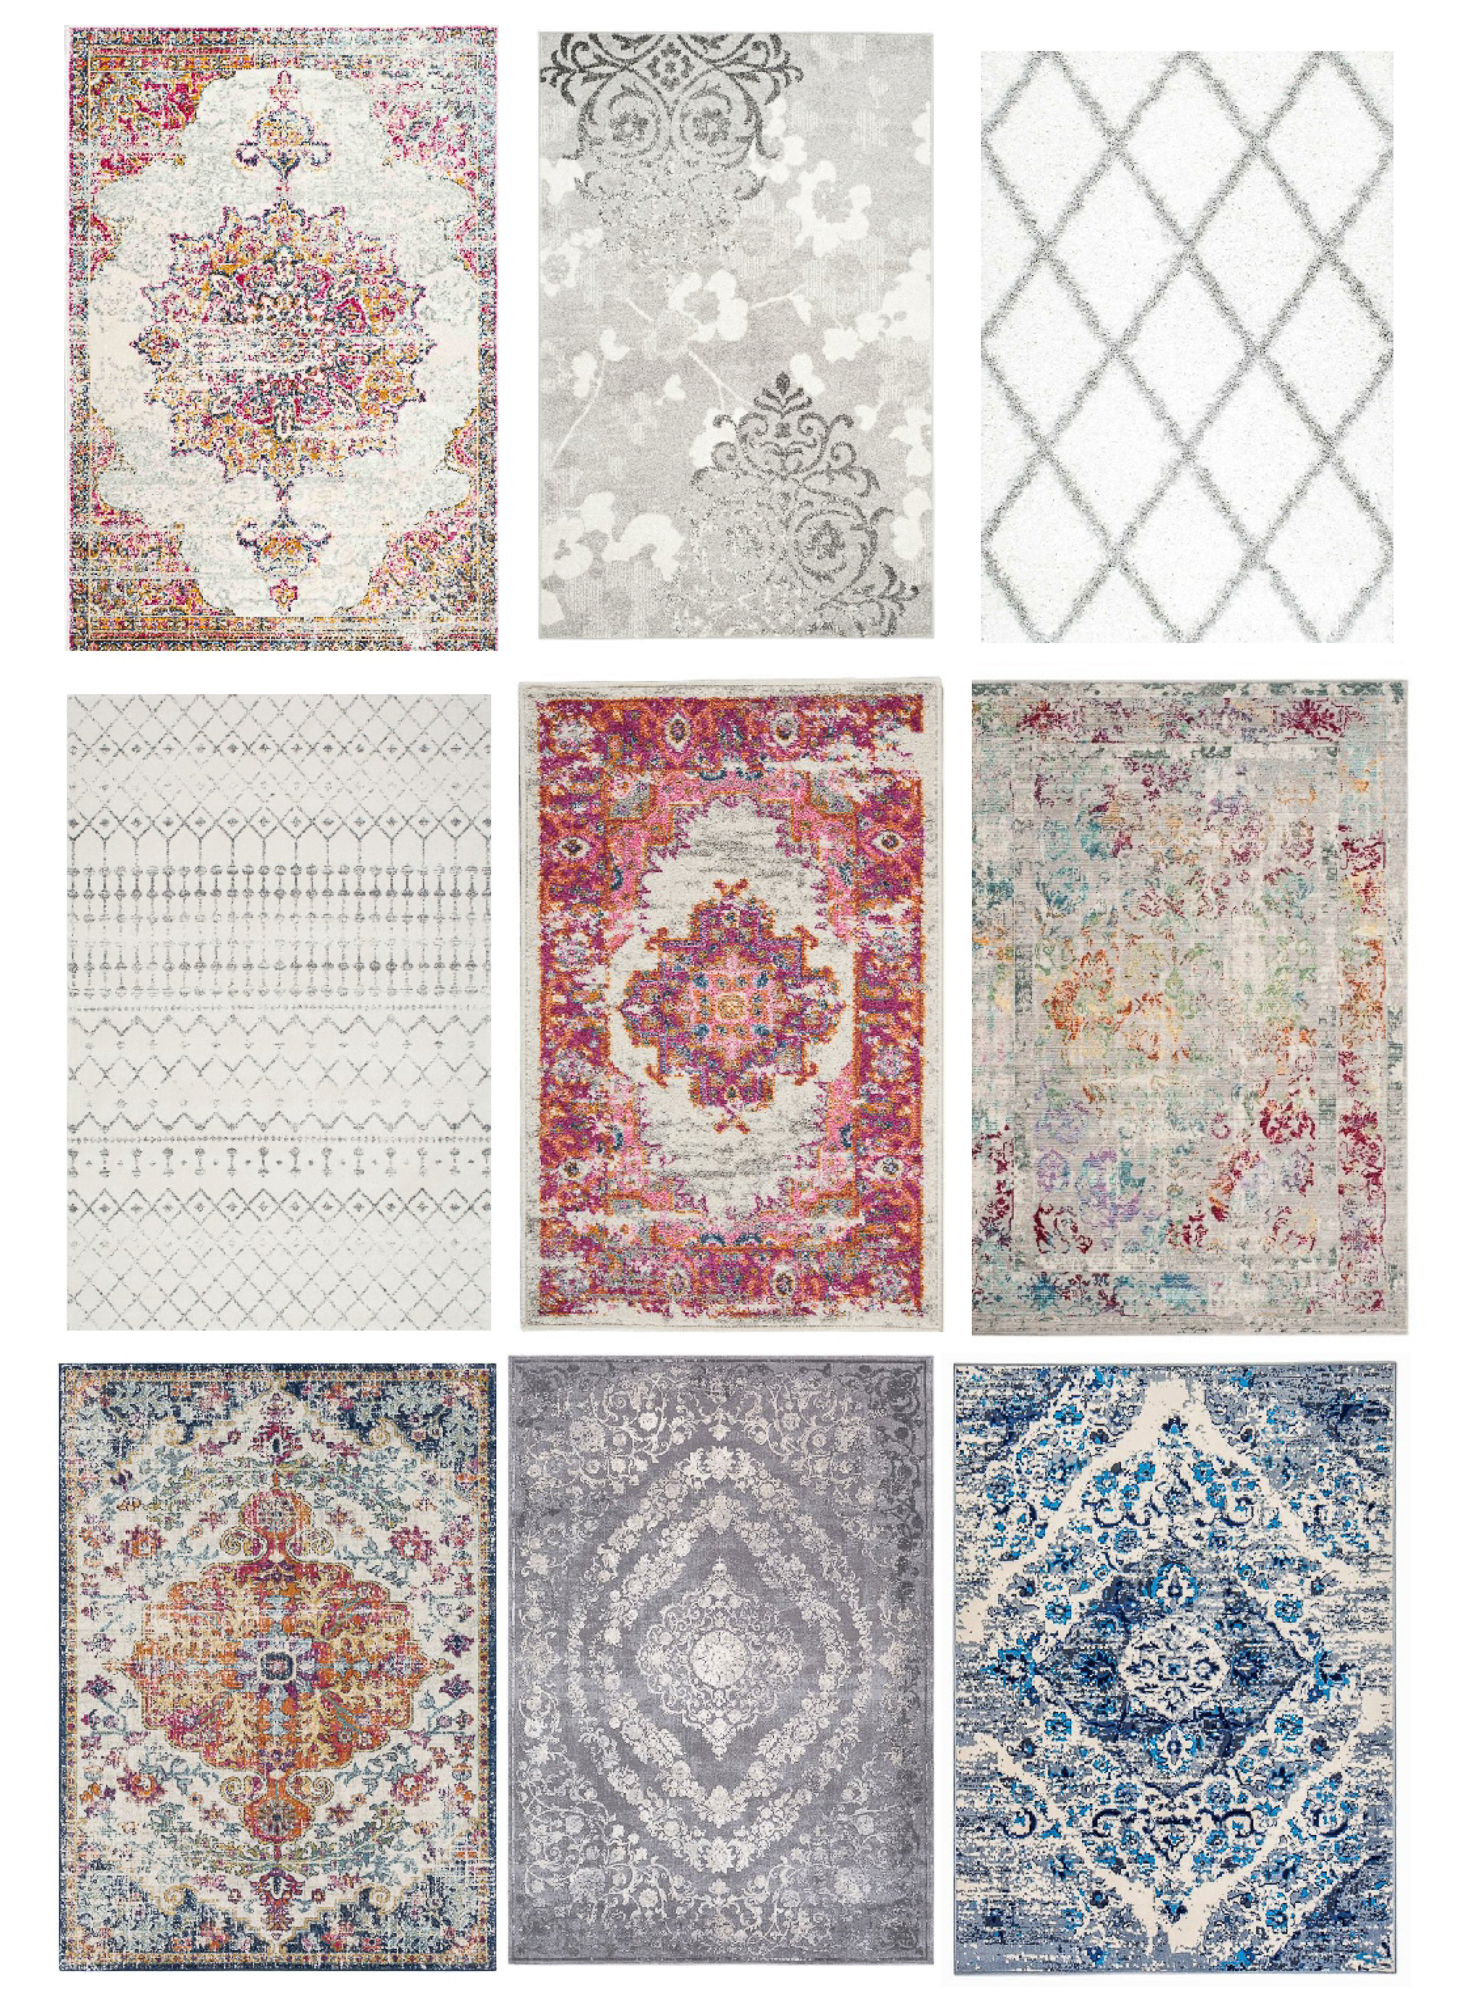 affordable area rugs, inexpensive quality rugs, easy and affordable home updates, spring 2018 interior trends